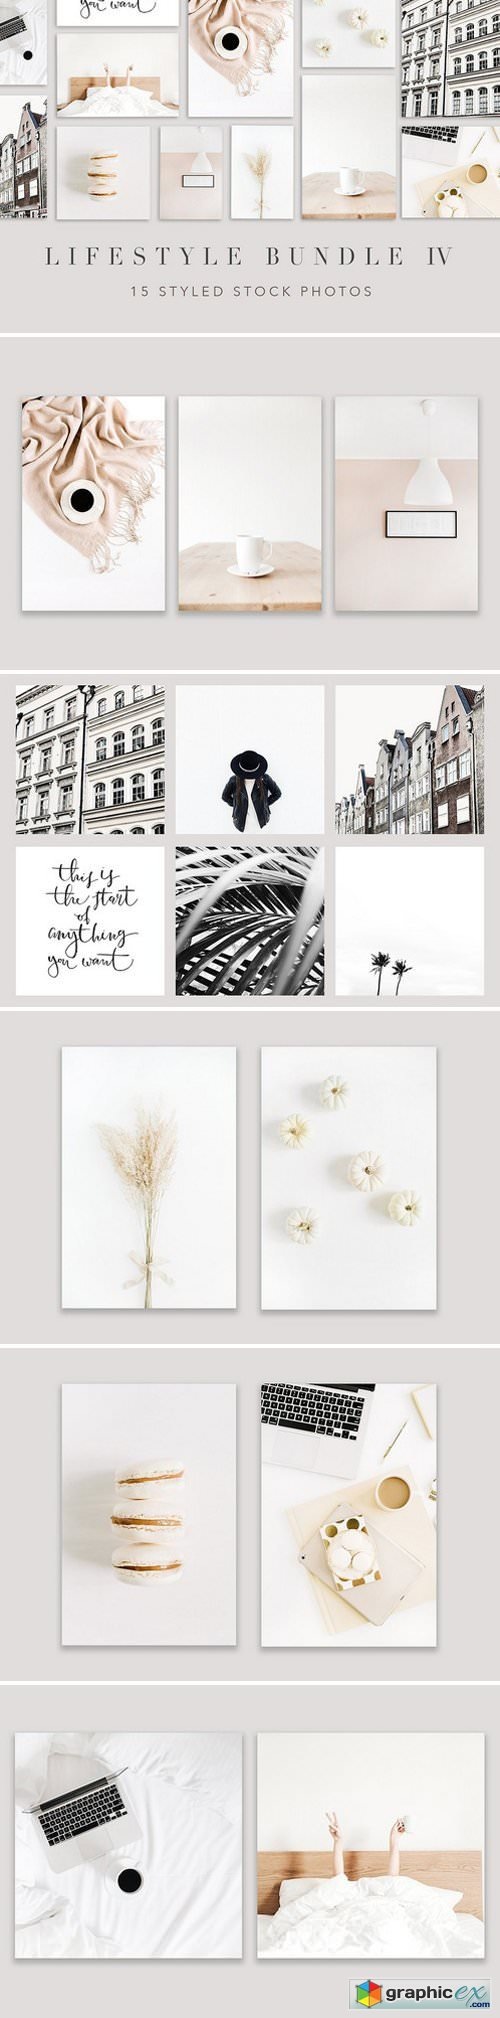 Lifestyle Photo Bundle 4